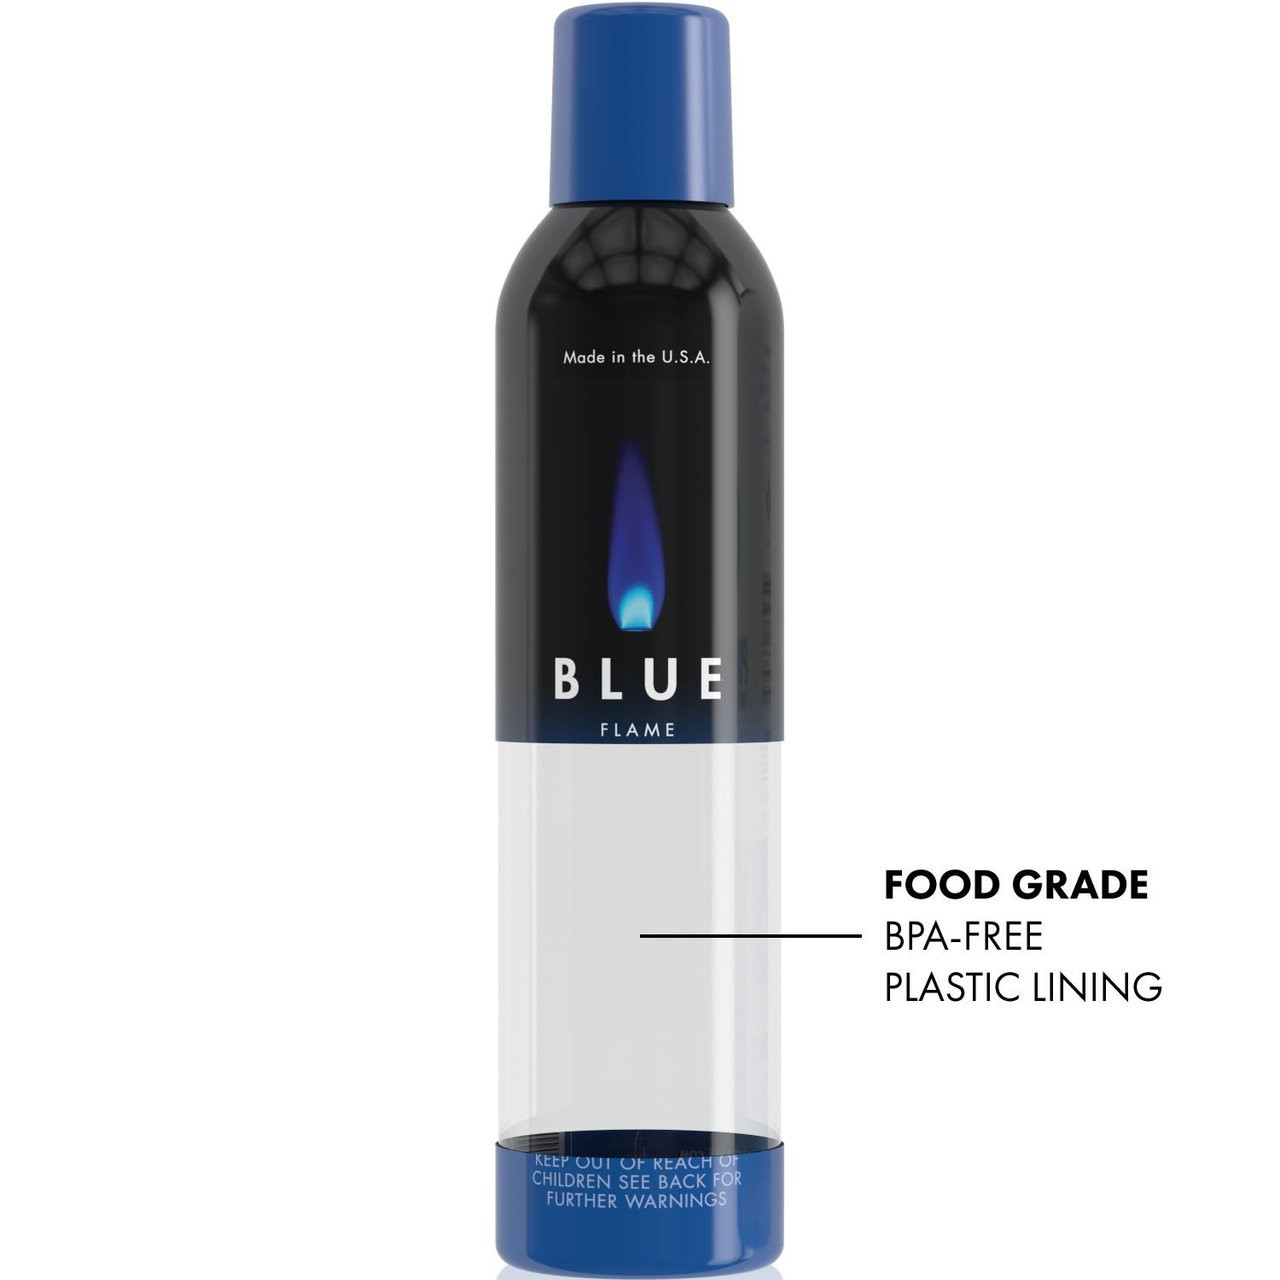 Blue Flame N-Butane Food-grade Triple Refined 11X Filtered Butane Gas